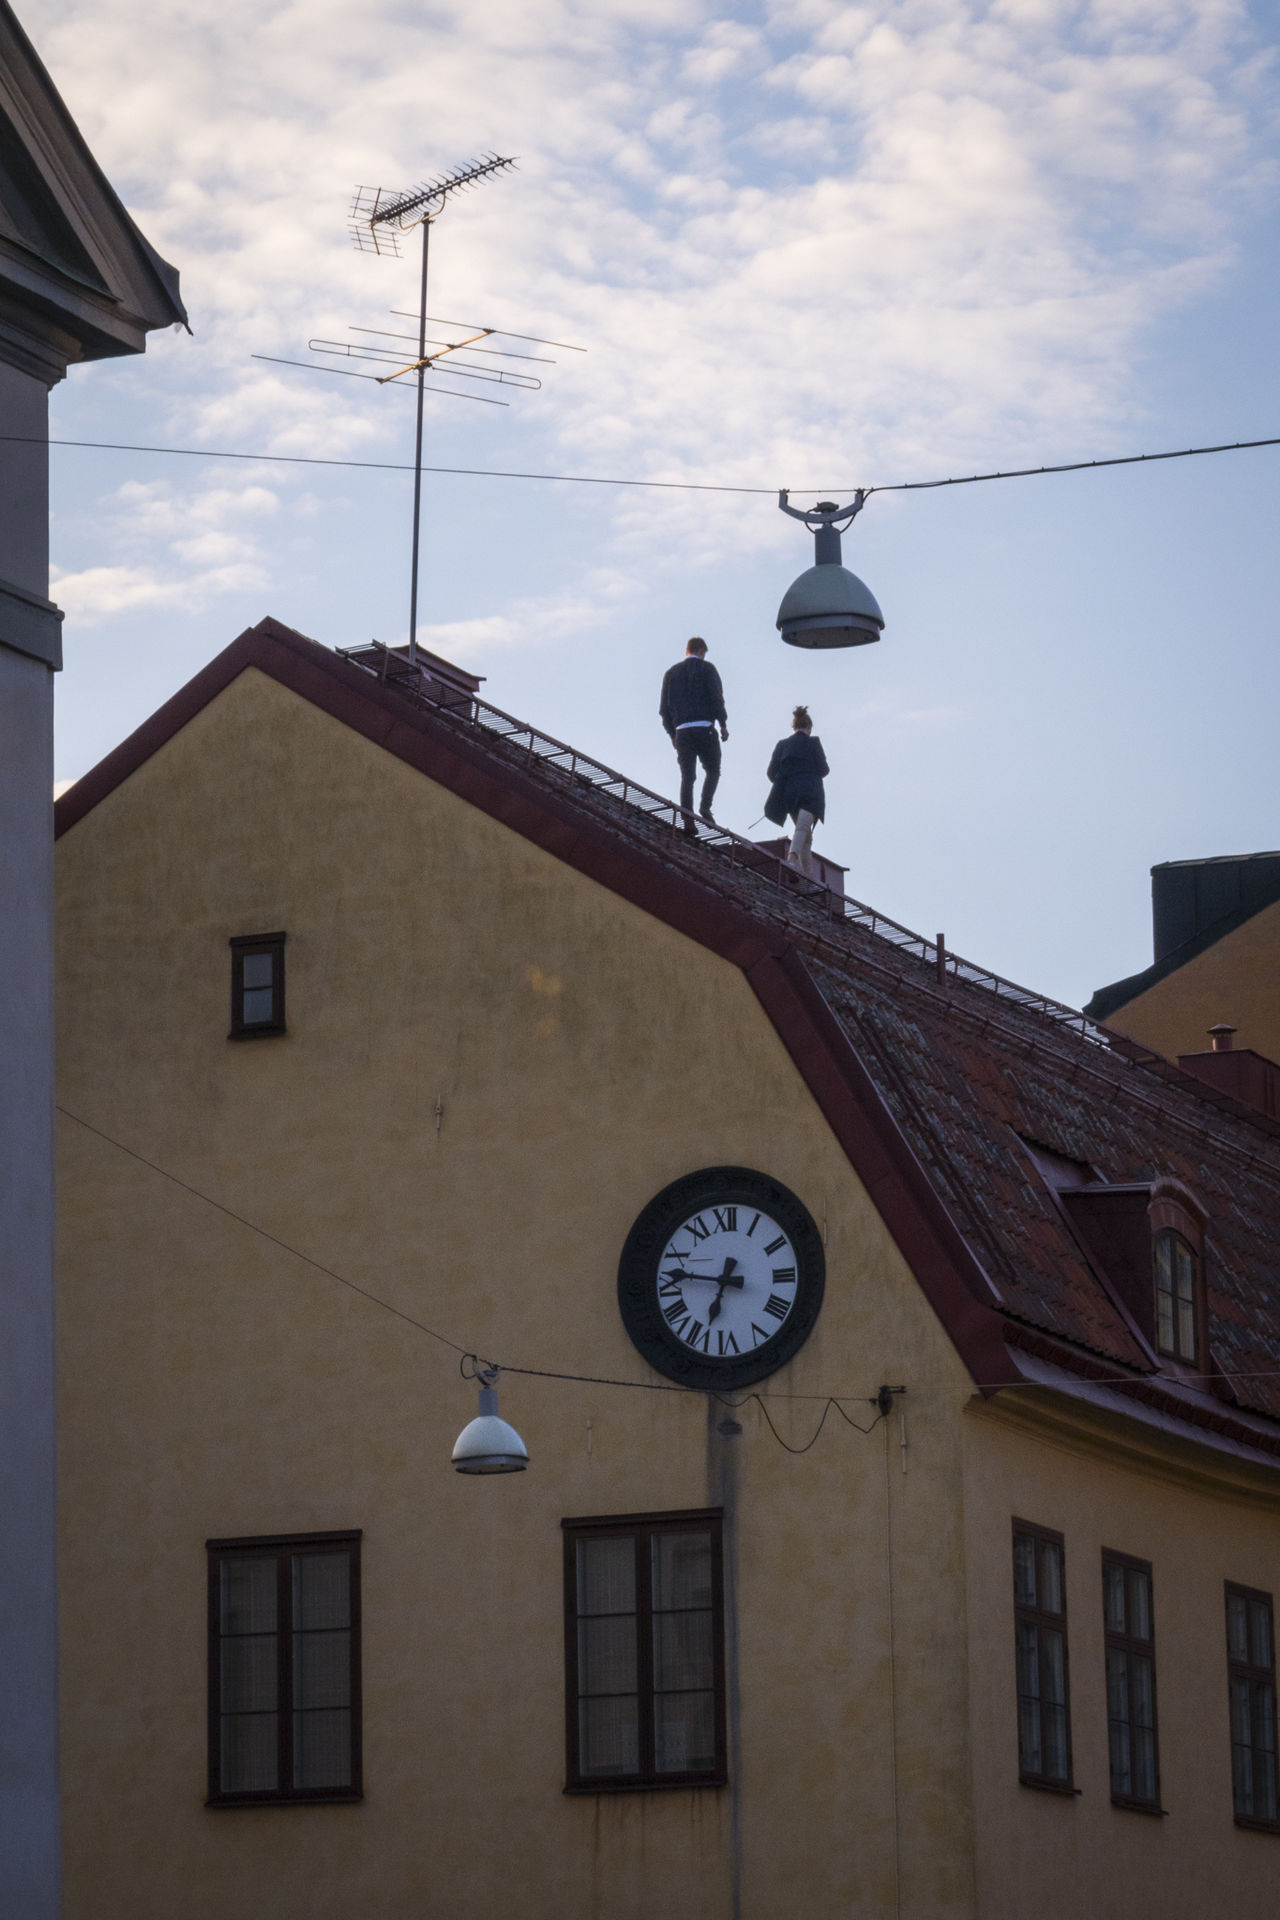 Rooftop walkers Alternative Fitness Building Dangerous High Life Lifestyle Living Dangerously Low Angle View Outdoors Rooftop Sky Södermalm Looking Up Adventure Club Battle Of The Cities People And Places Embrace Urban Life The City Light